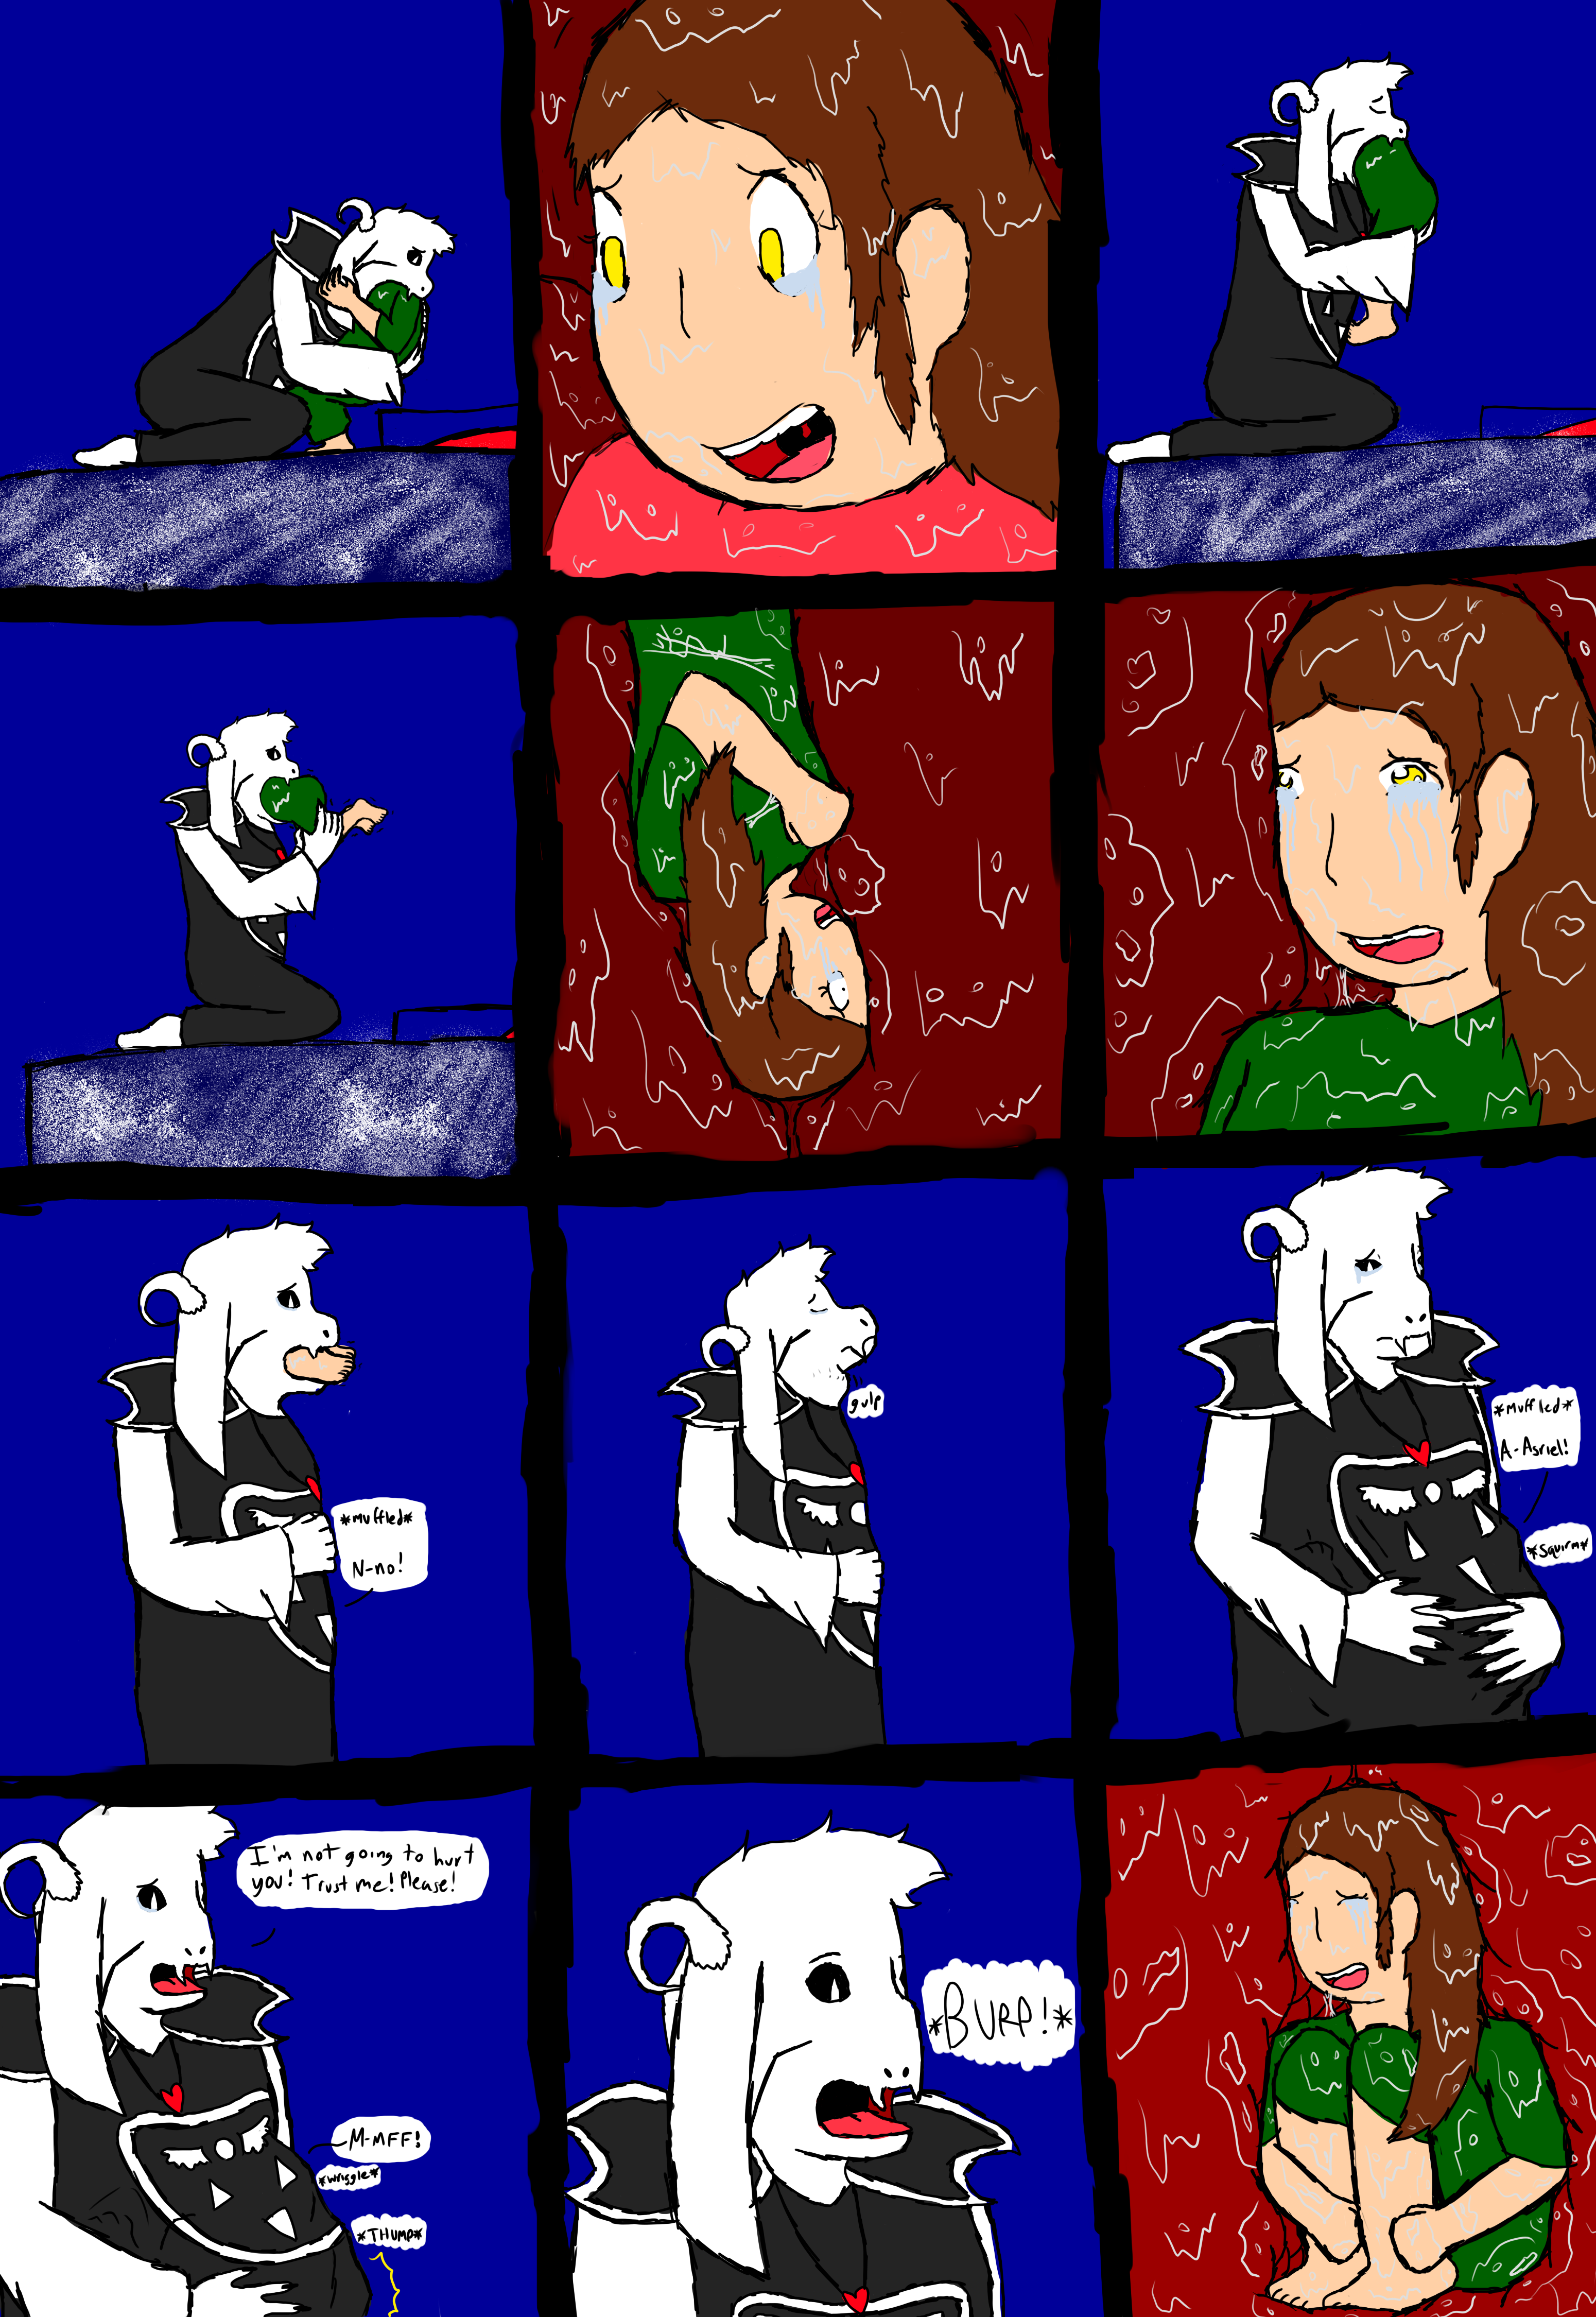 Asriel Dreemurr Comic protection(asriel vore comic) page 2pillowfloof on